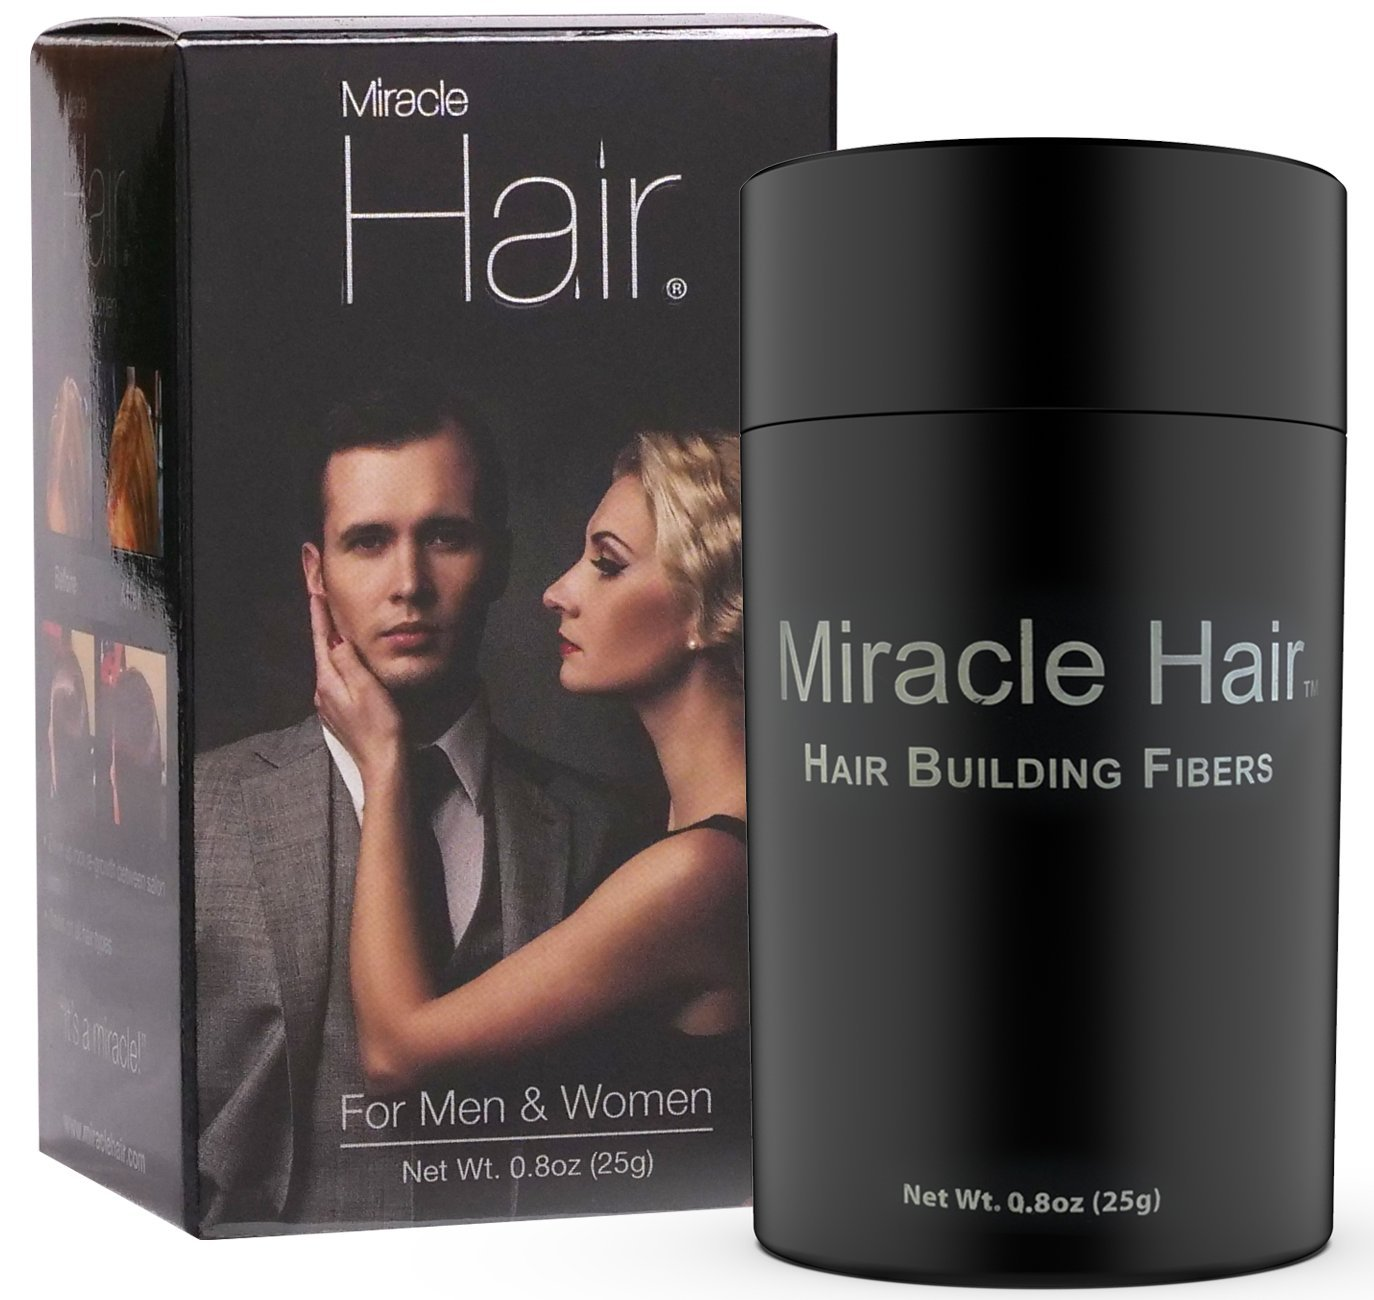 Miracle Hair – Hair Loss Concealer – Highest Quality Natural Hair Building Fibers Thickens Thinning Hair Instantly for Men And Women 25 Grams (75 Day Supply) Mir-9602